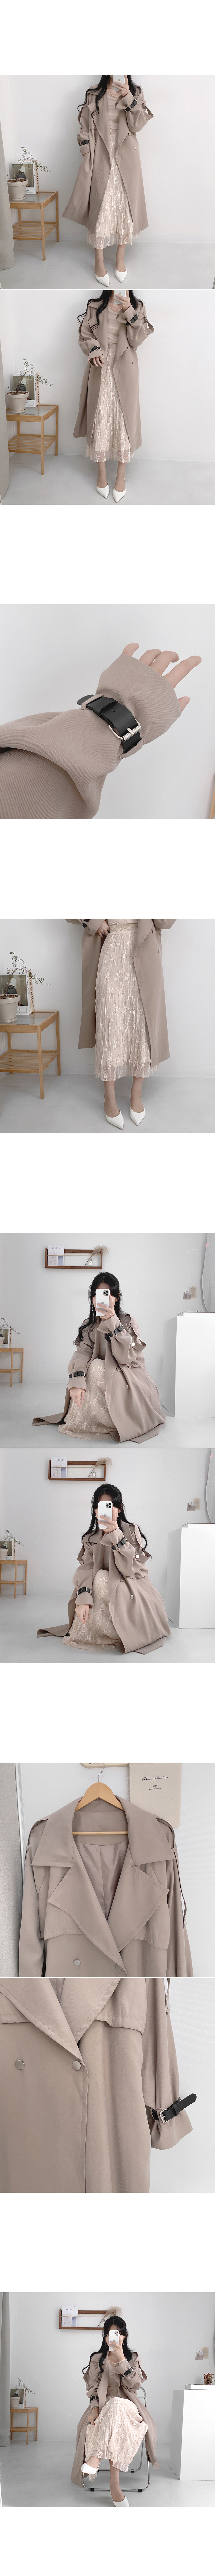 Riall sleeve belted barbary coat